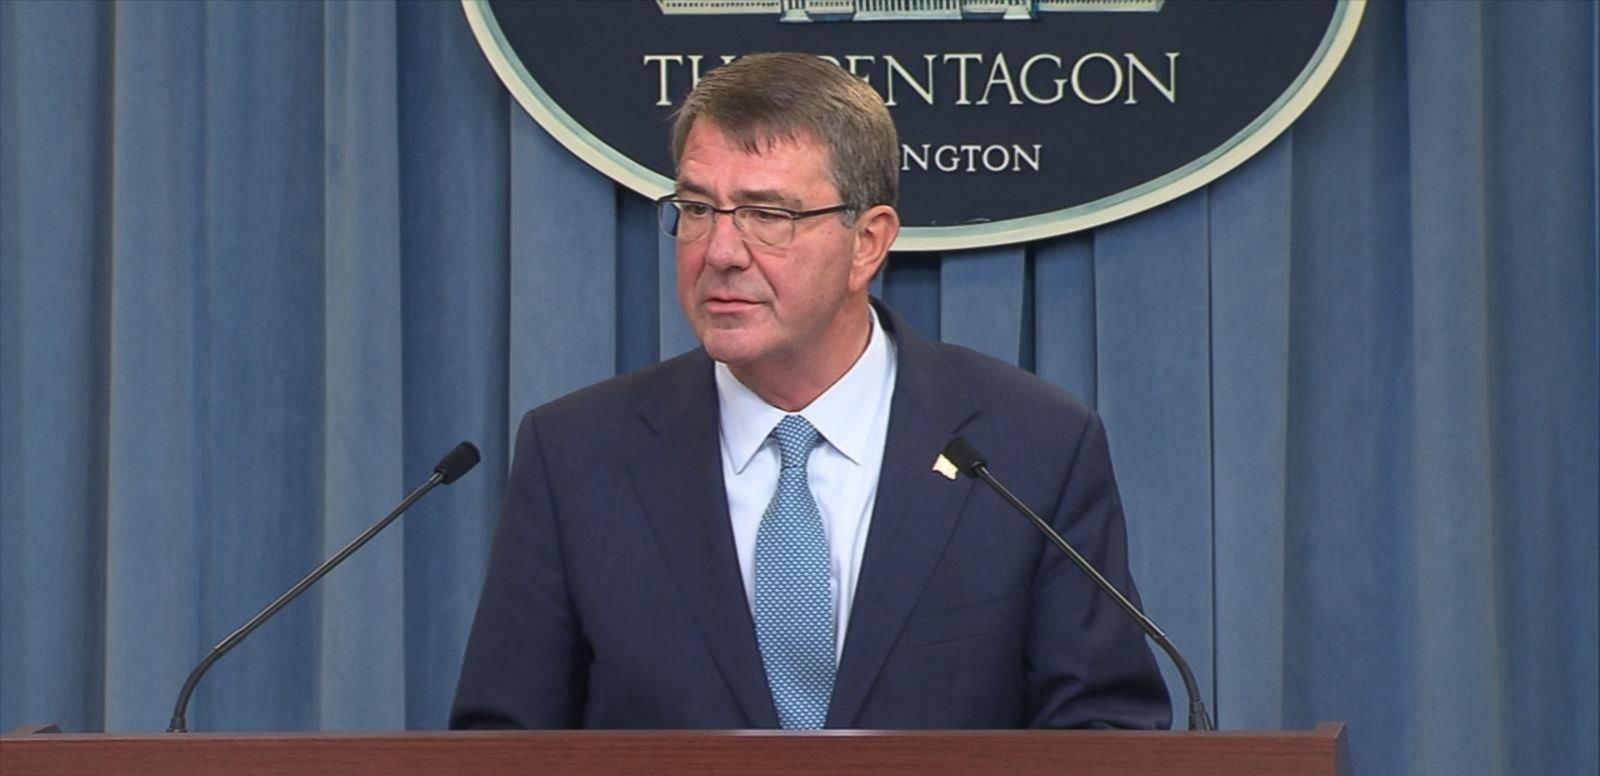 The Pentagon announced the repeal of its ban on transgender service members.